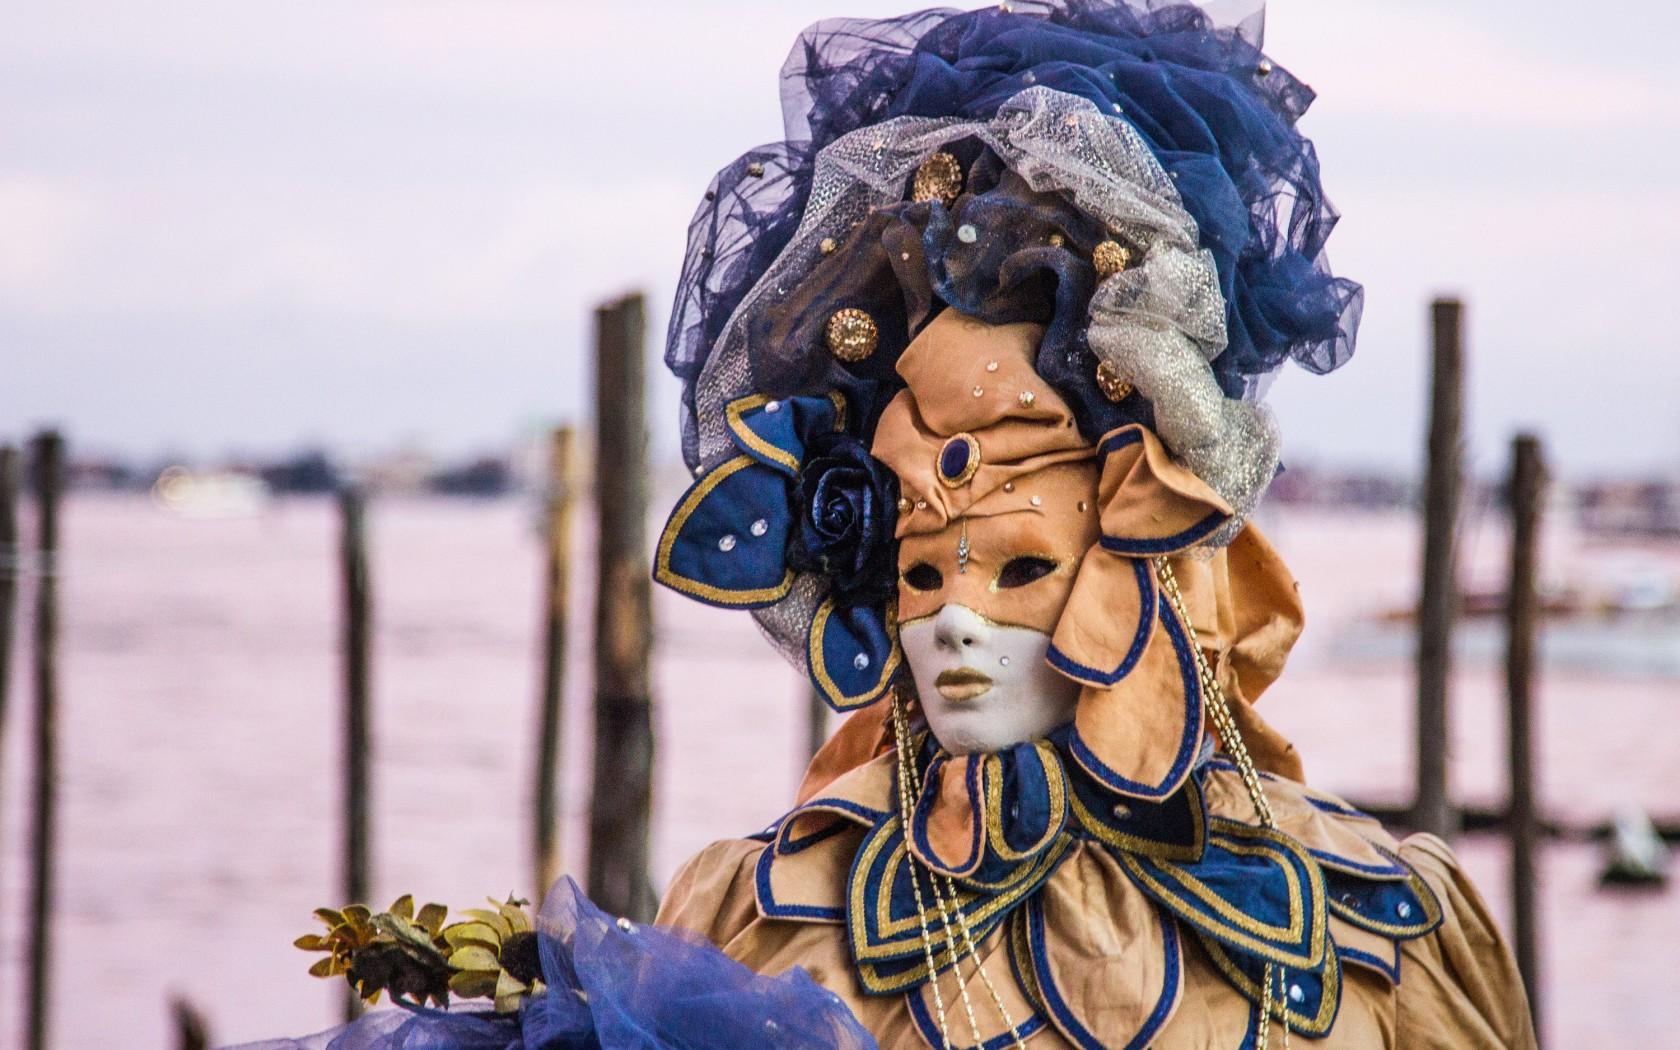 In Pictures: 13 Striking Image Of Venice Carnival